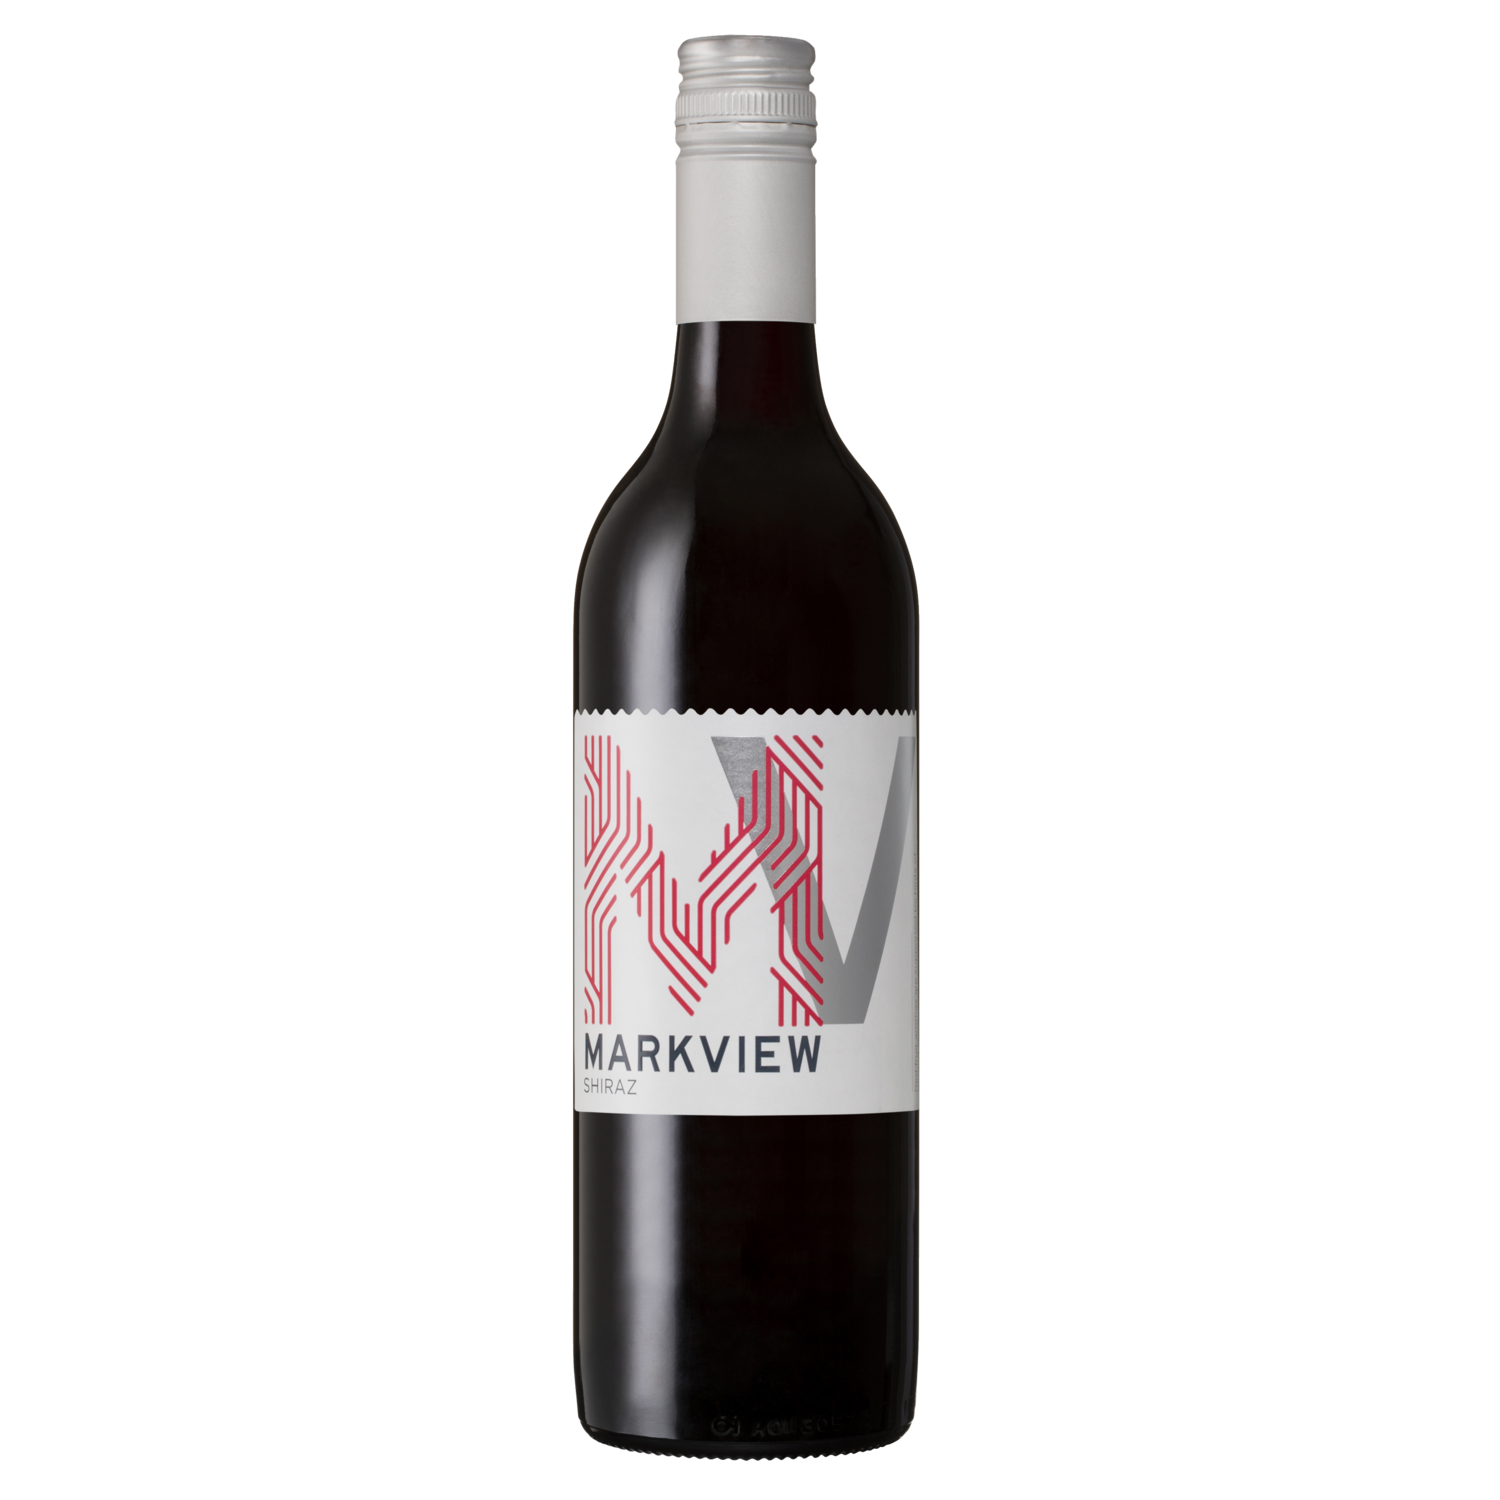 McWilliam's Markview Shiraz